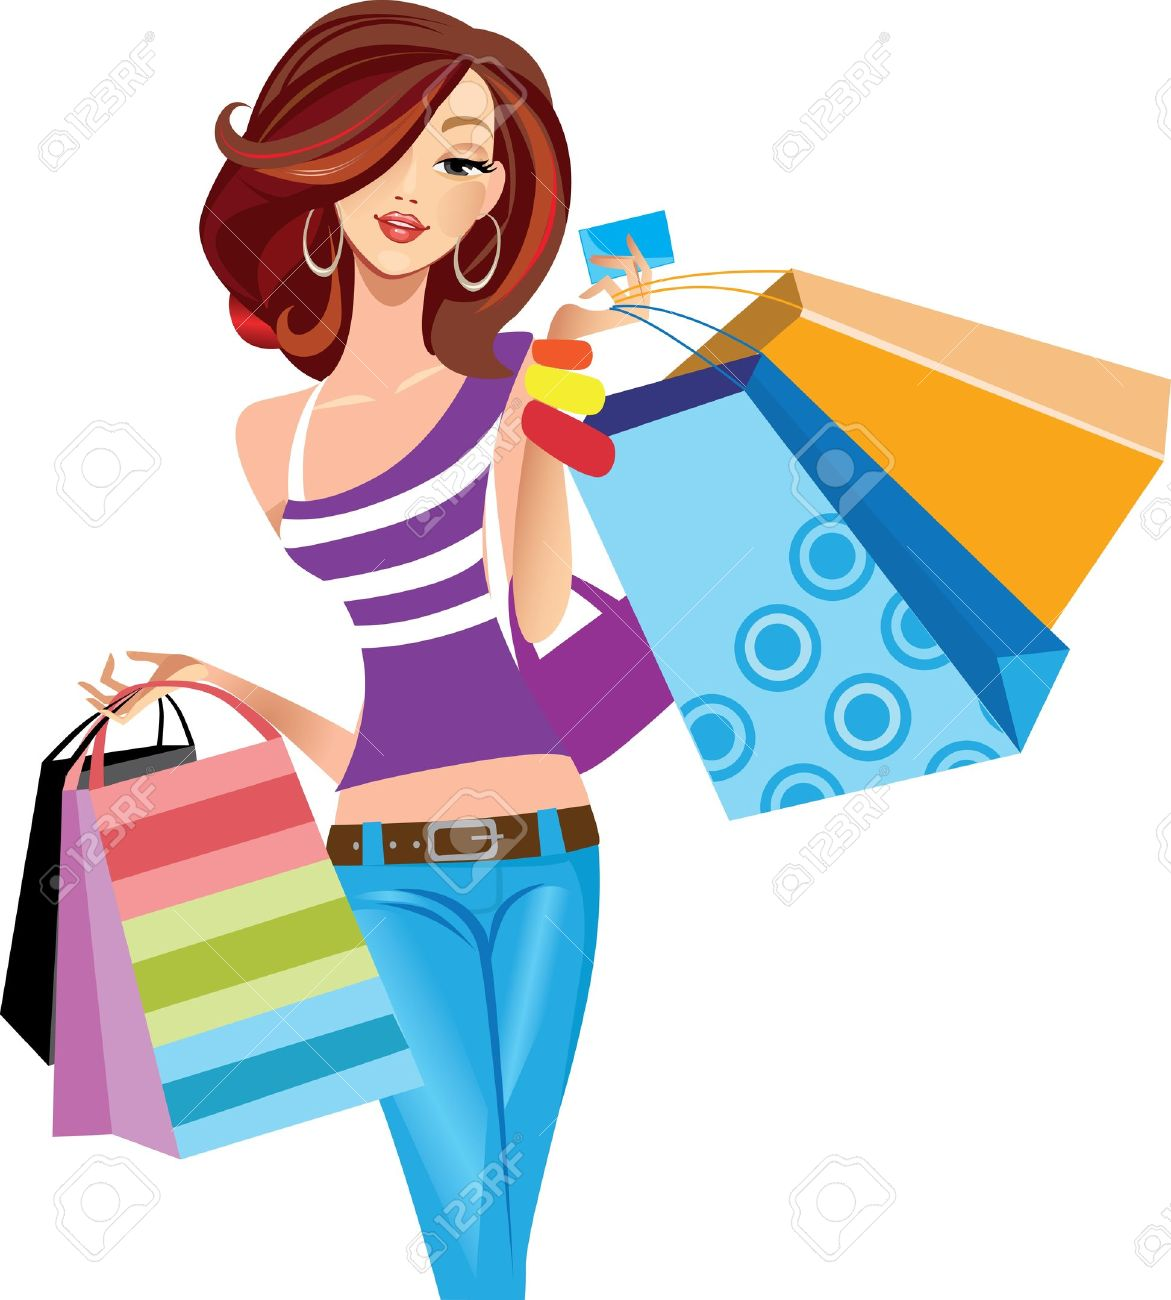 Girl Shopping Clipart.